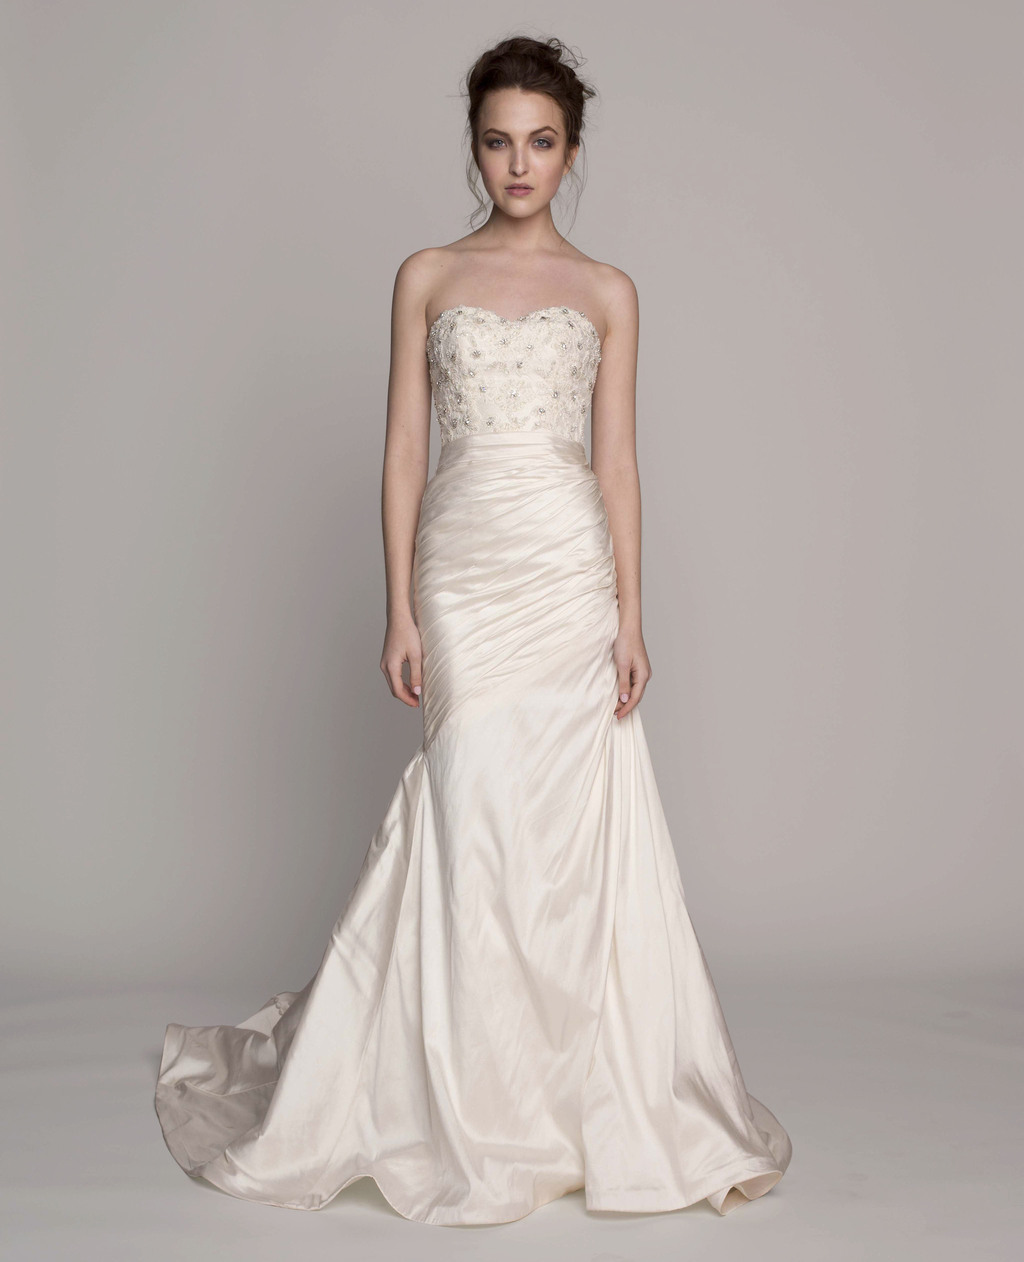 Kelly Faetanini Wedding Dress 2014 Spring Bridal Gown Collection ...